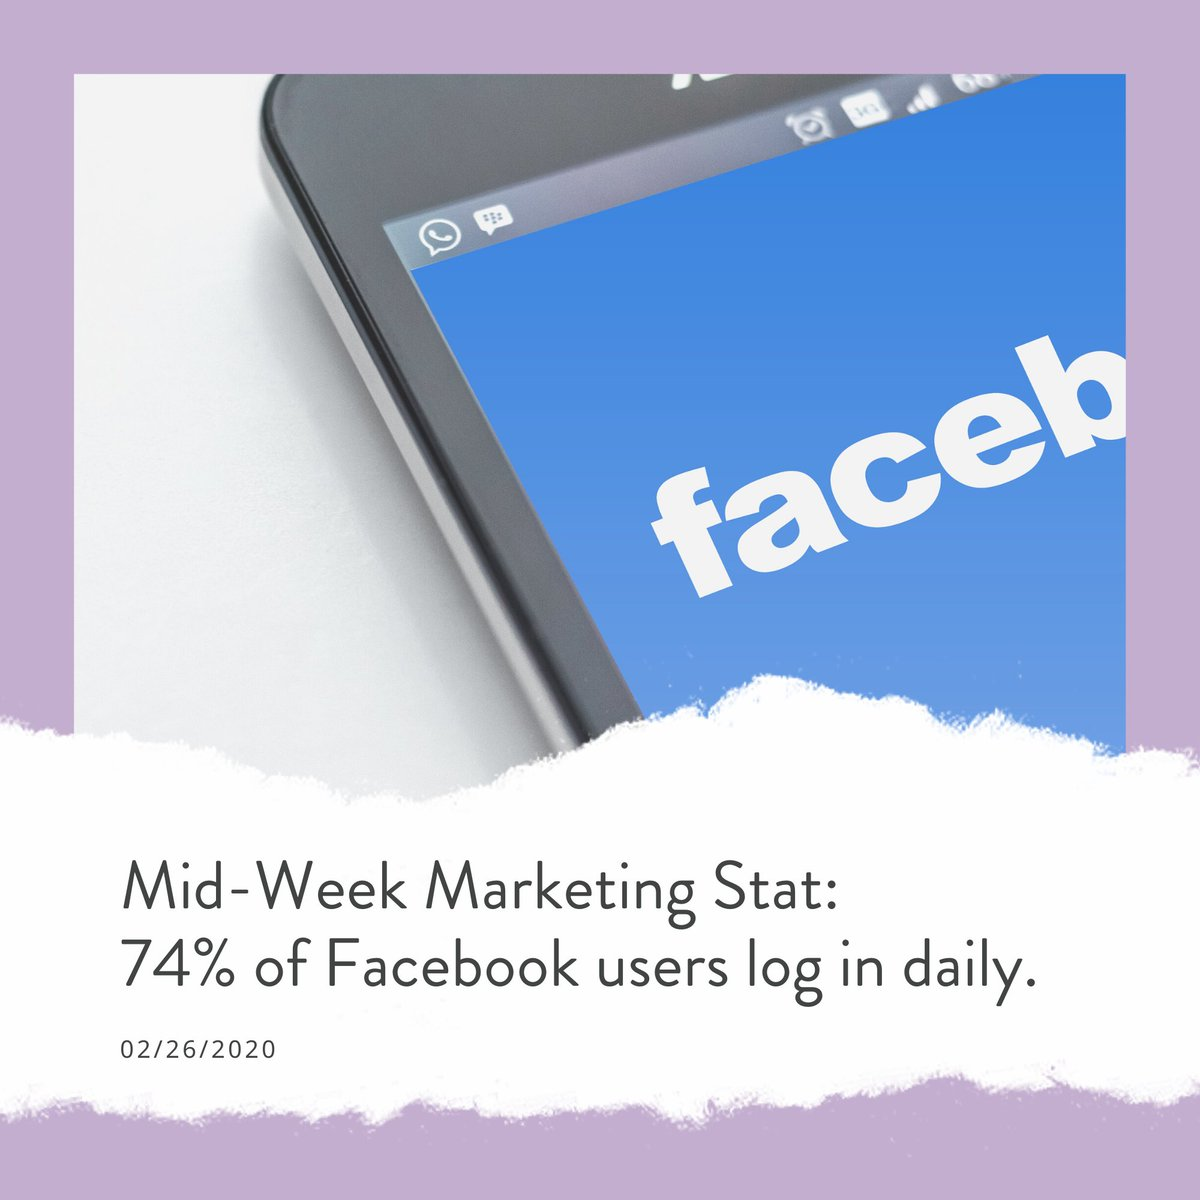 Mid-Week Marketing Stat 74% of Facebook users log in daily. (Hootsuite, 2020)⎜#HappyMarketing #emptydesksolutionspic.twitter.com/maOLc1G2ie